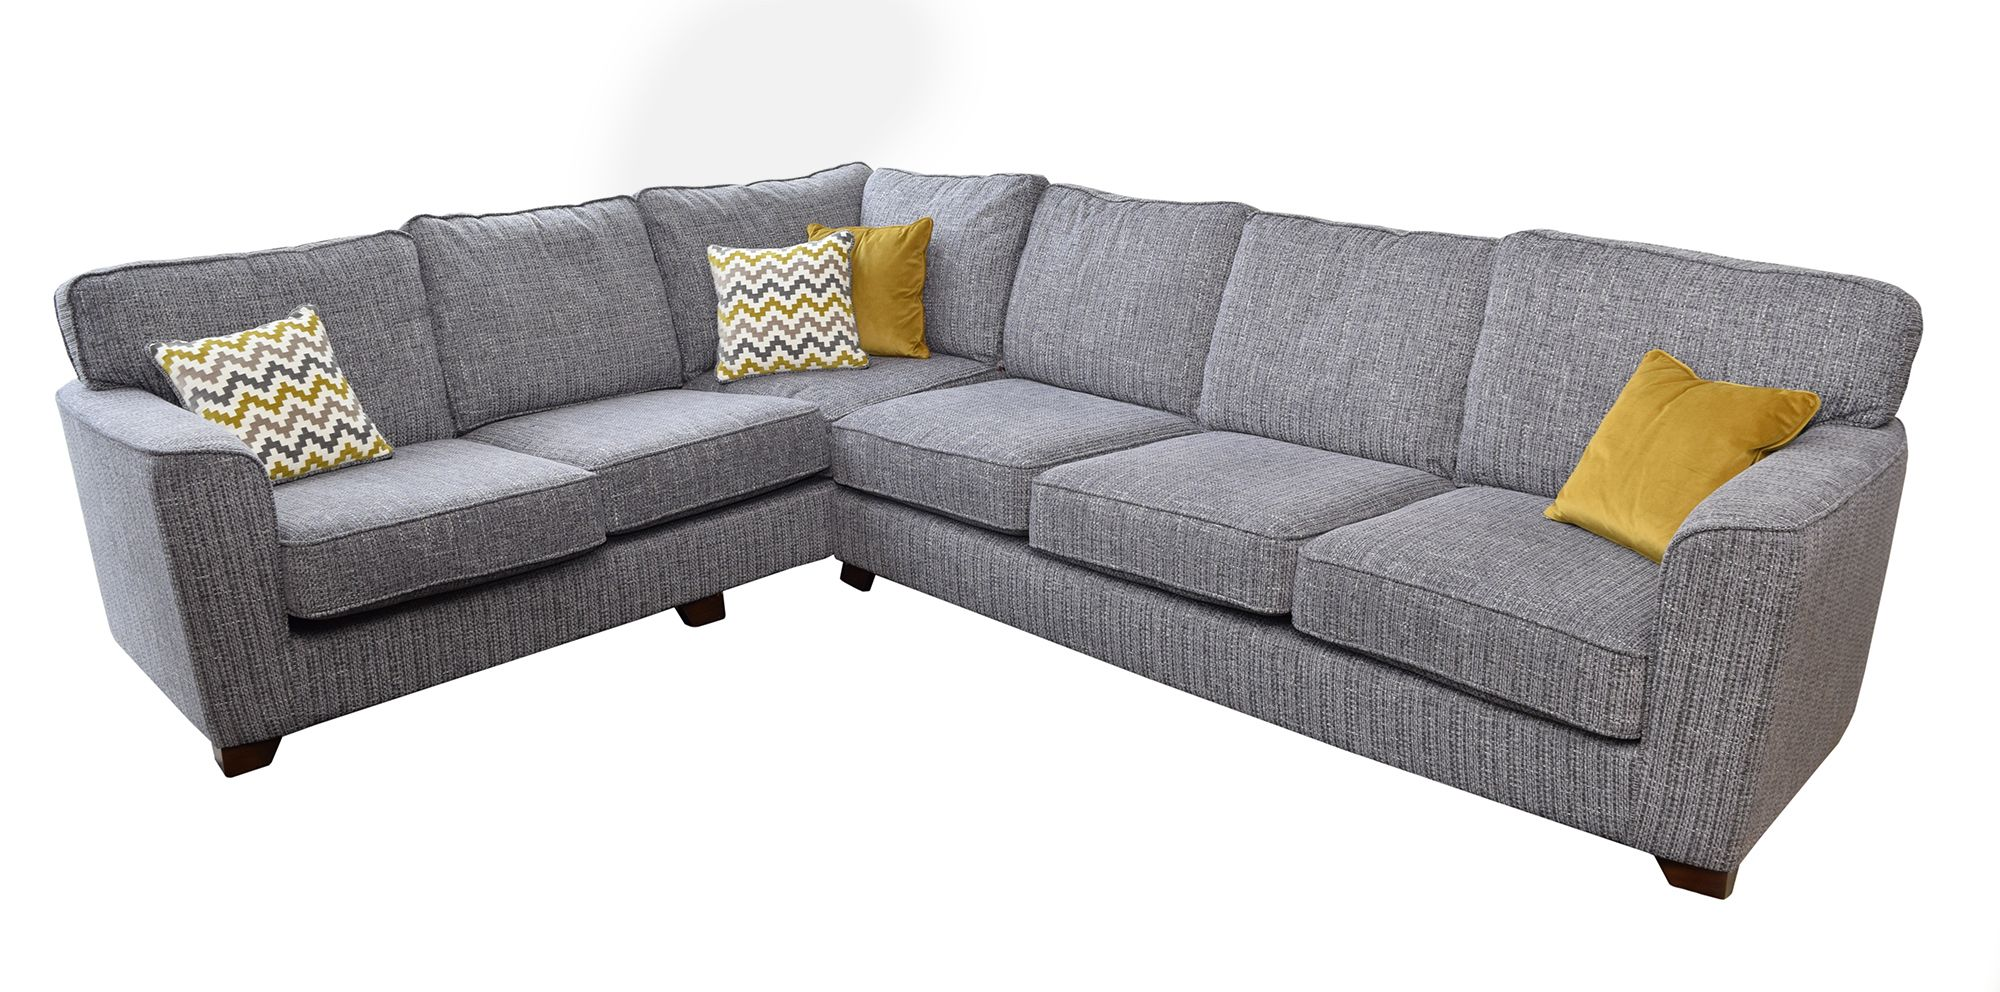 Meubles Furniture Ireland Bali 4 Seater 2 Seater Corner Sofa Lhf Fabric B